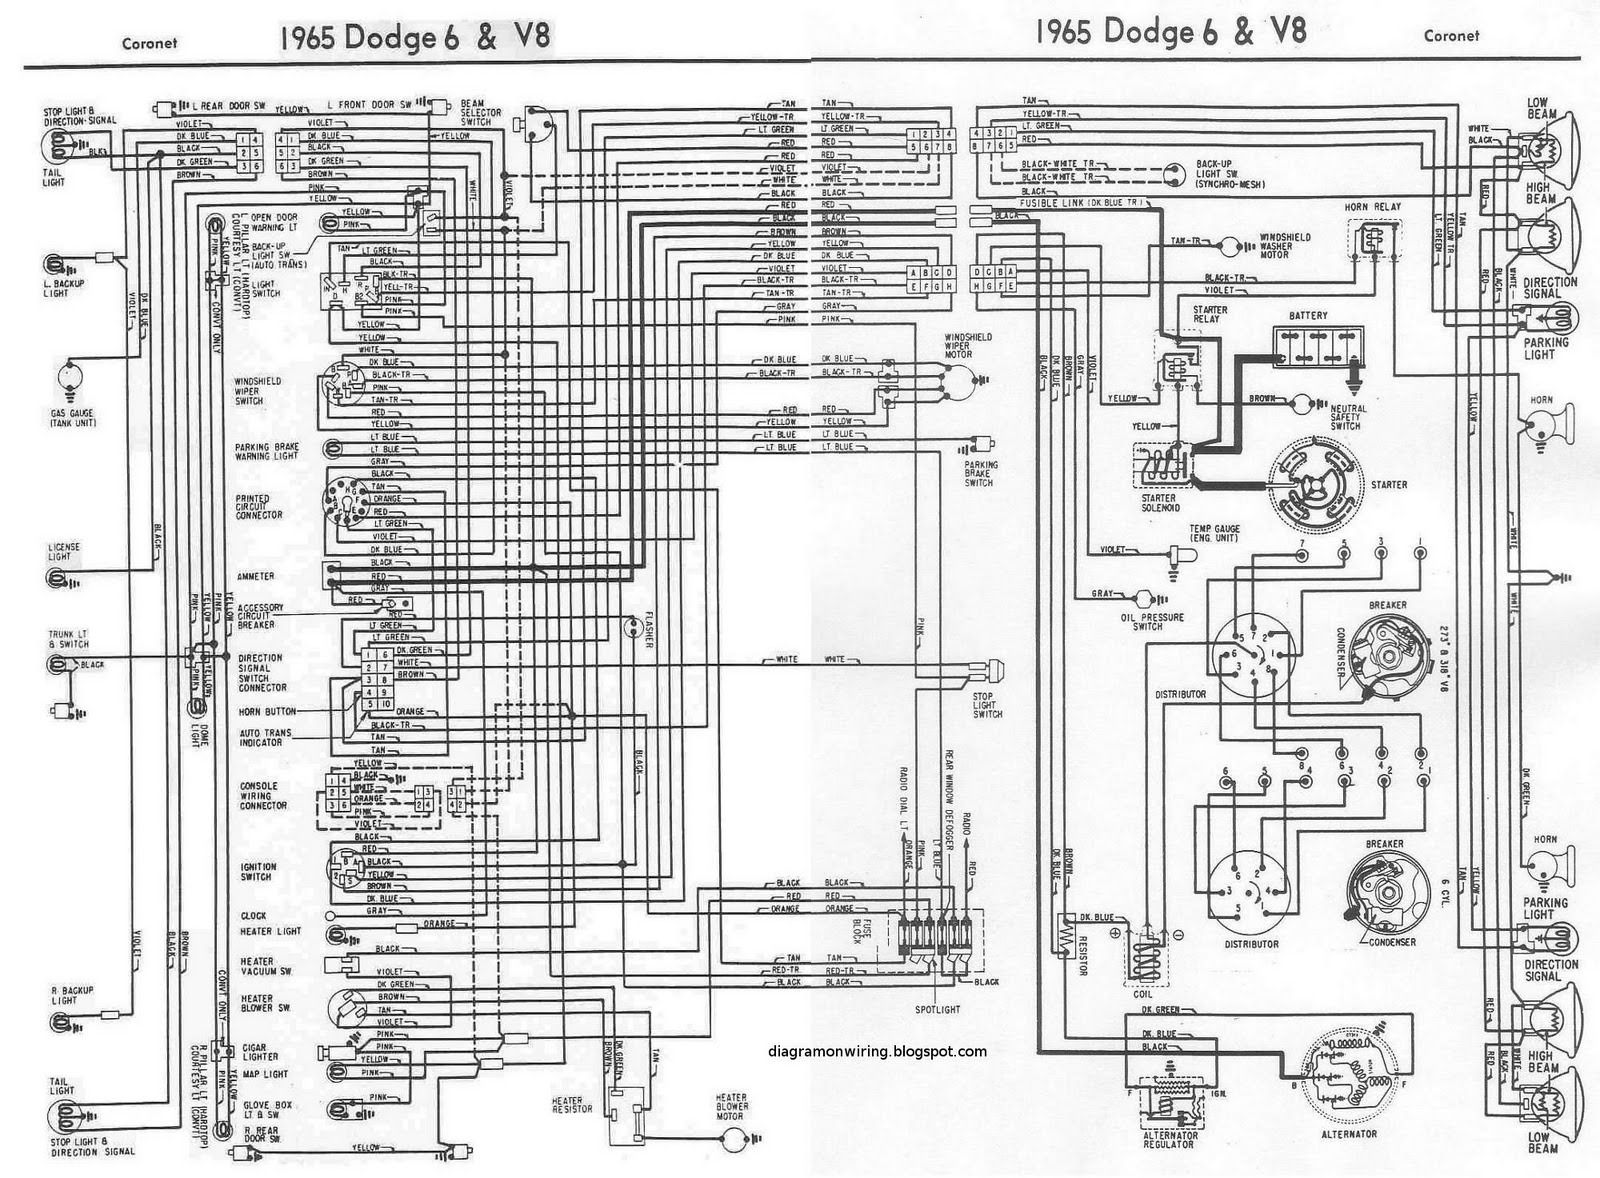 hight resolution of wirings of 1964 plymouth 6 and v8 valiant part 1 diagram data schema diagram 1964 plymouth 6 and v8 valiant part 1 wiring 1964 plymouth